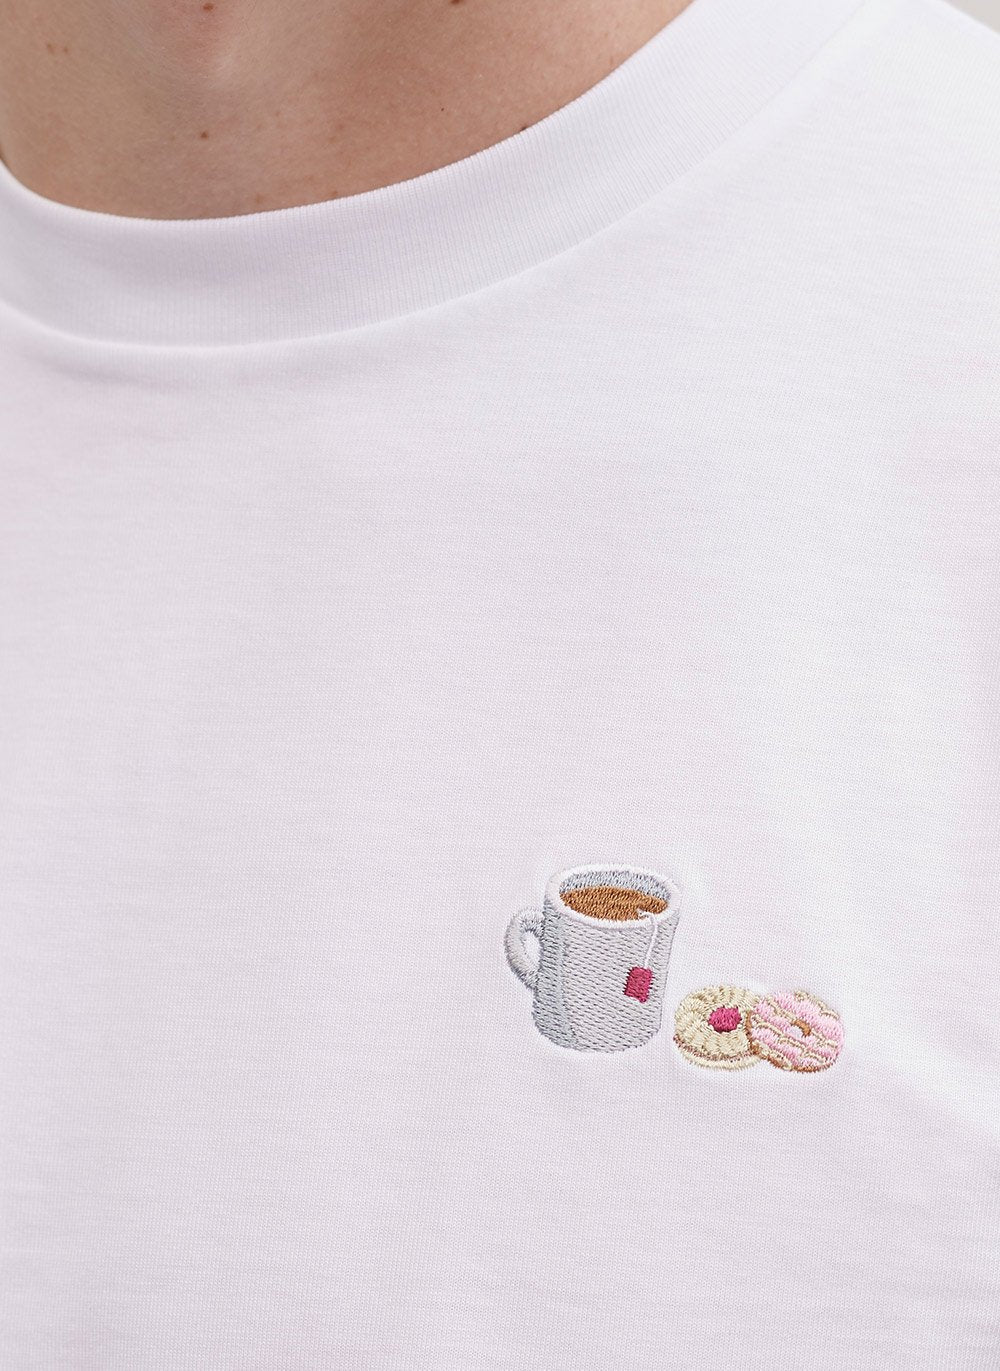 T Shirt | Tea & Biscuits